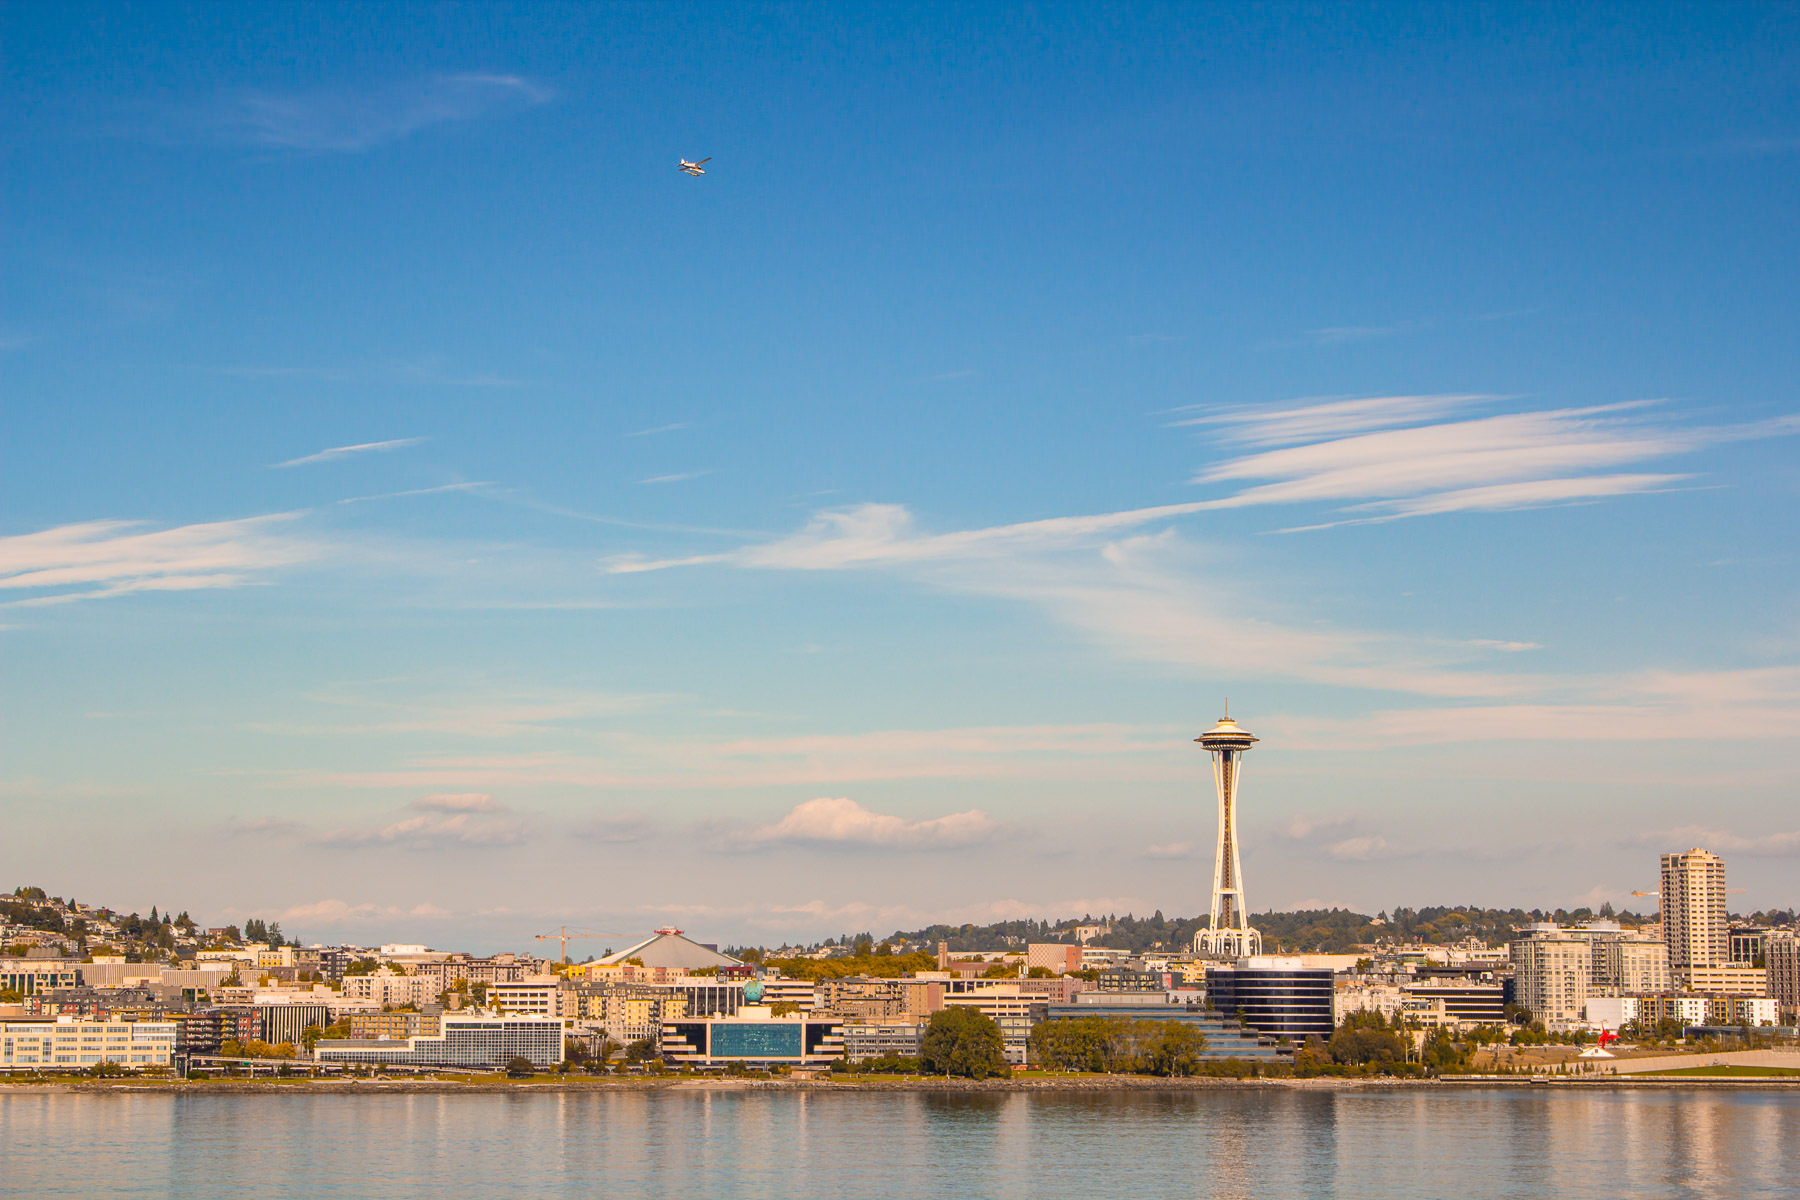 A seaplane flies over the Space Needle and its surrounding environs, Seattle, Washington.